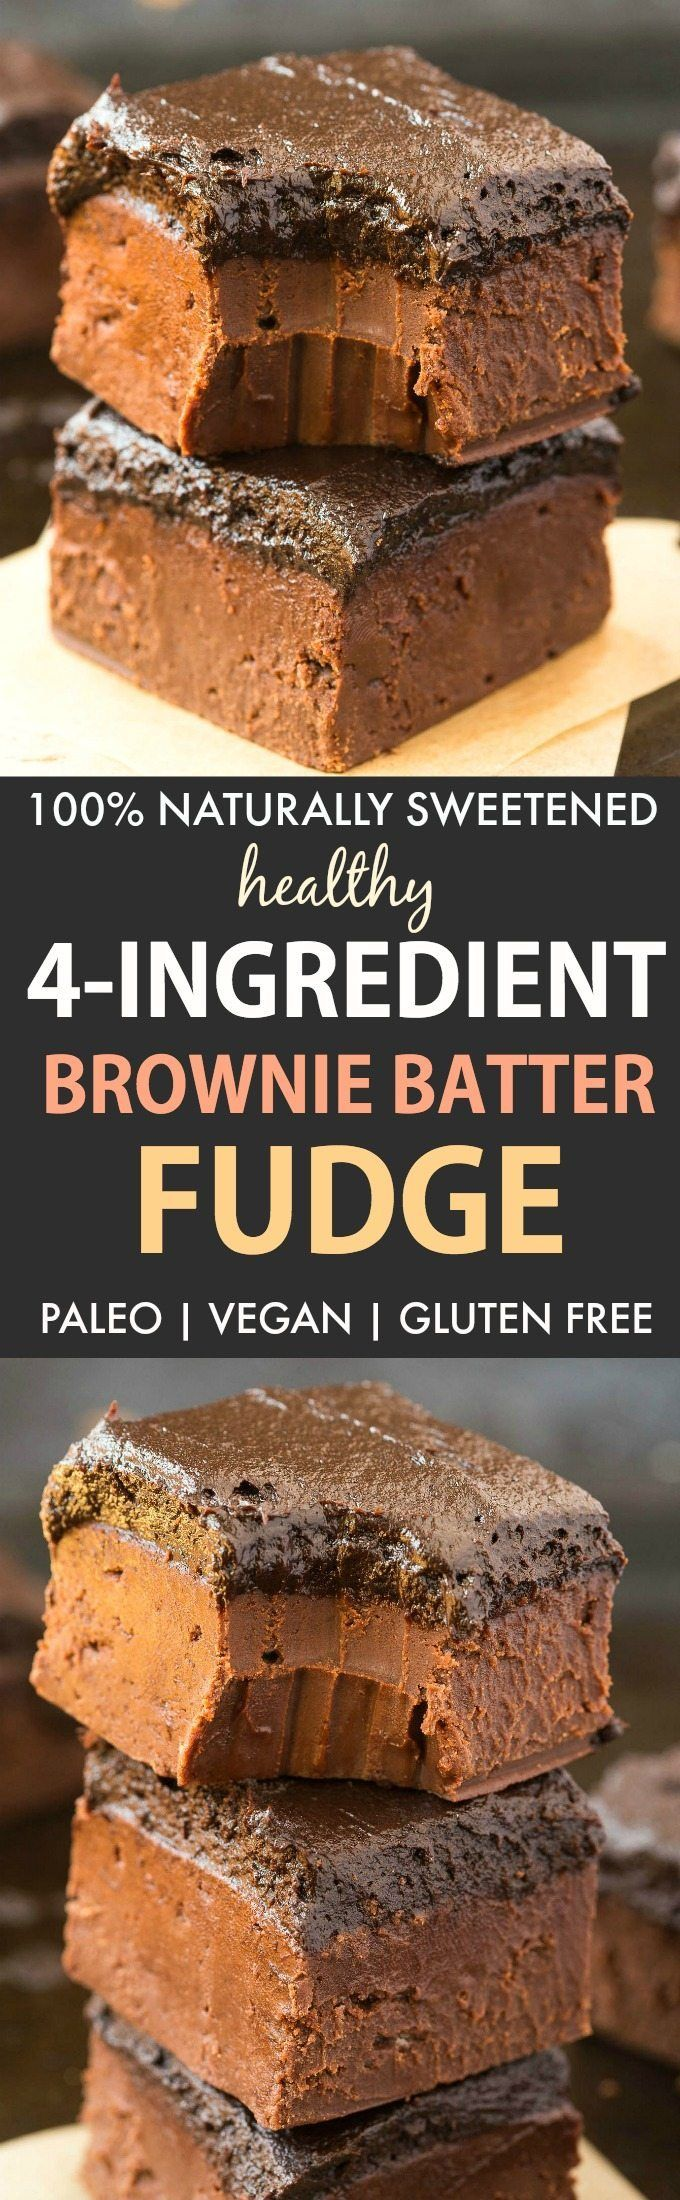 Healthy 4-Ingredient Brownie Batter Fudge (Paleo, Vegan, Gluten Free)- 100% Naturally sweetened chocolate fudge made with no condensed milk or refined sugar, and ultra smooth, melt-in-your-mouth and creamy!